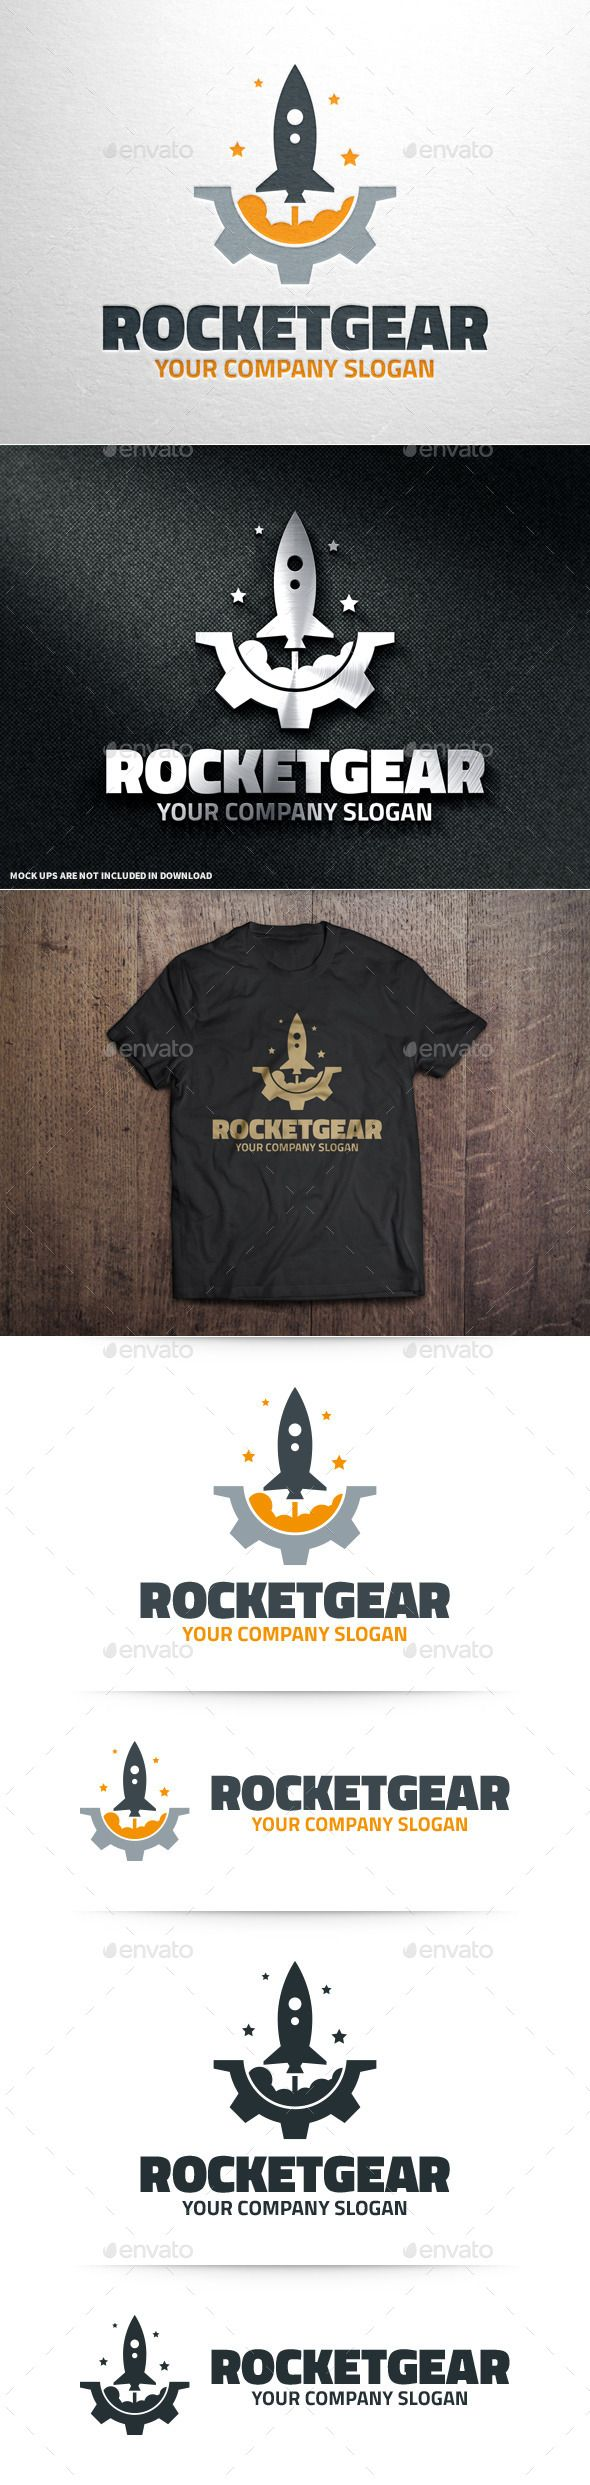 Rocket Gear Logo Template #vector #rocket #logo #template #ai #eps #psd #png #template #download #premium #buy #sale #company #logodesign #inspiration #space #launch #creative #envato #graphicriver